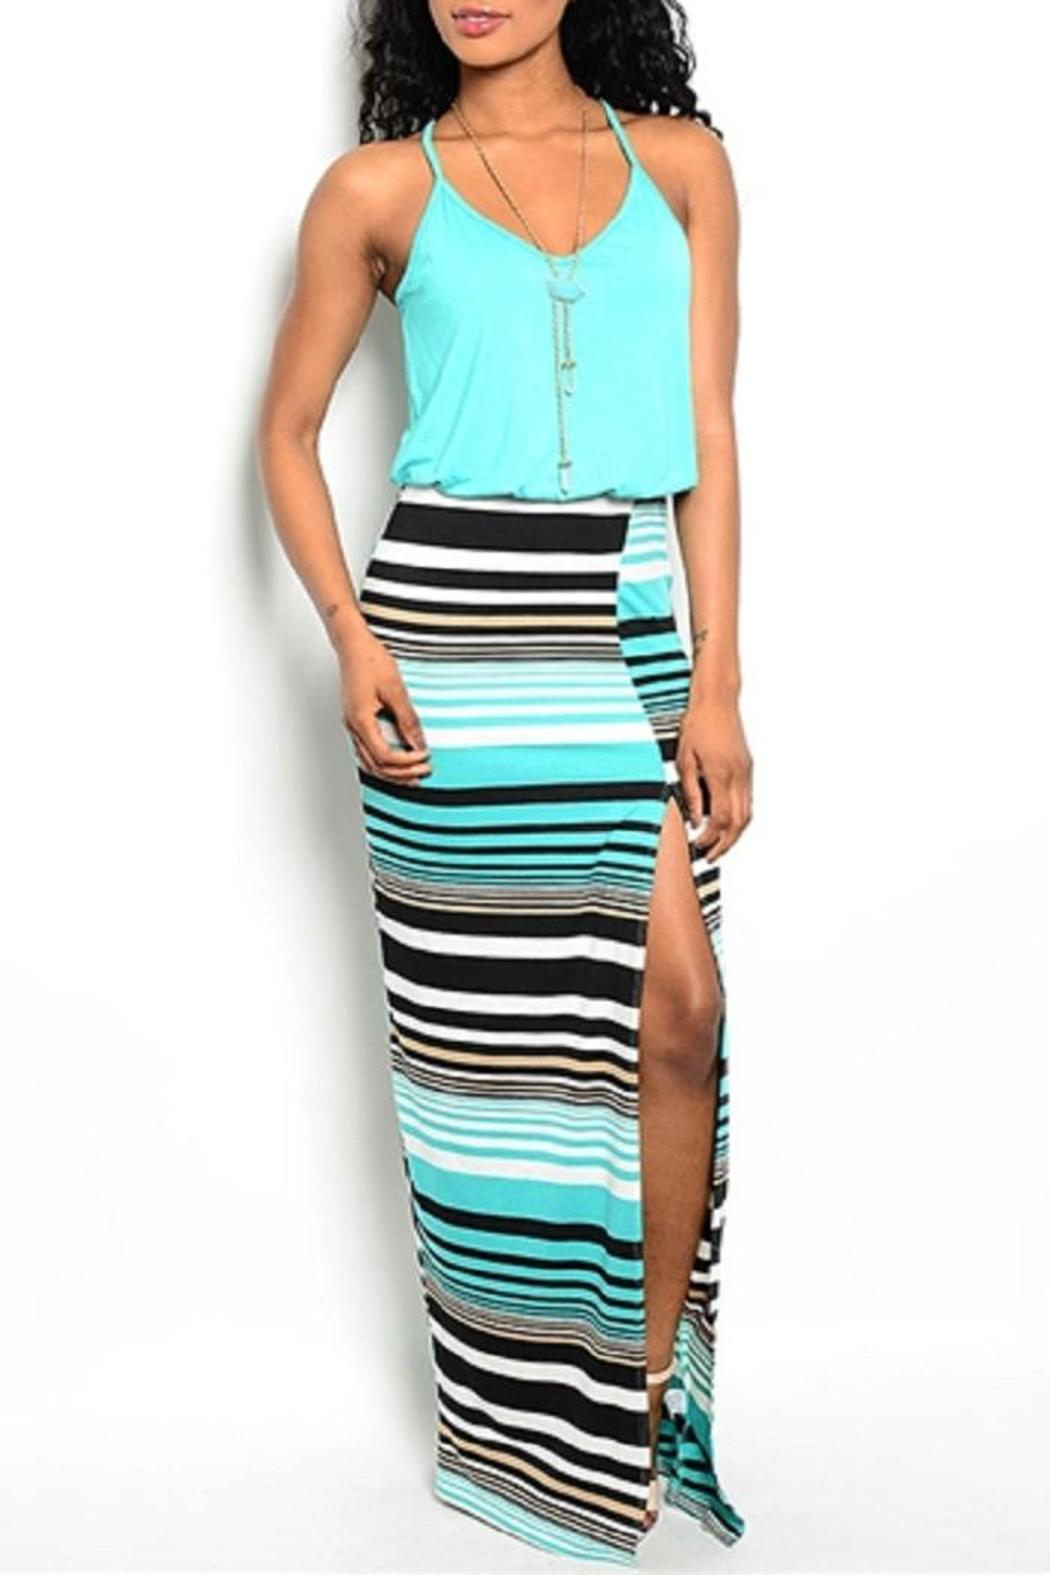 Adore Clothes & More Striped Maxi Dress - Front Cropped Image